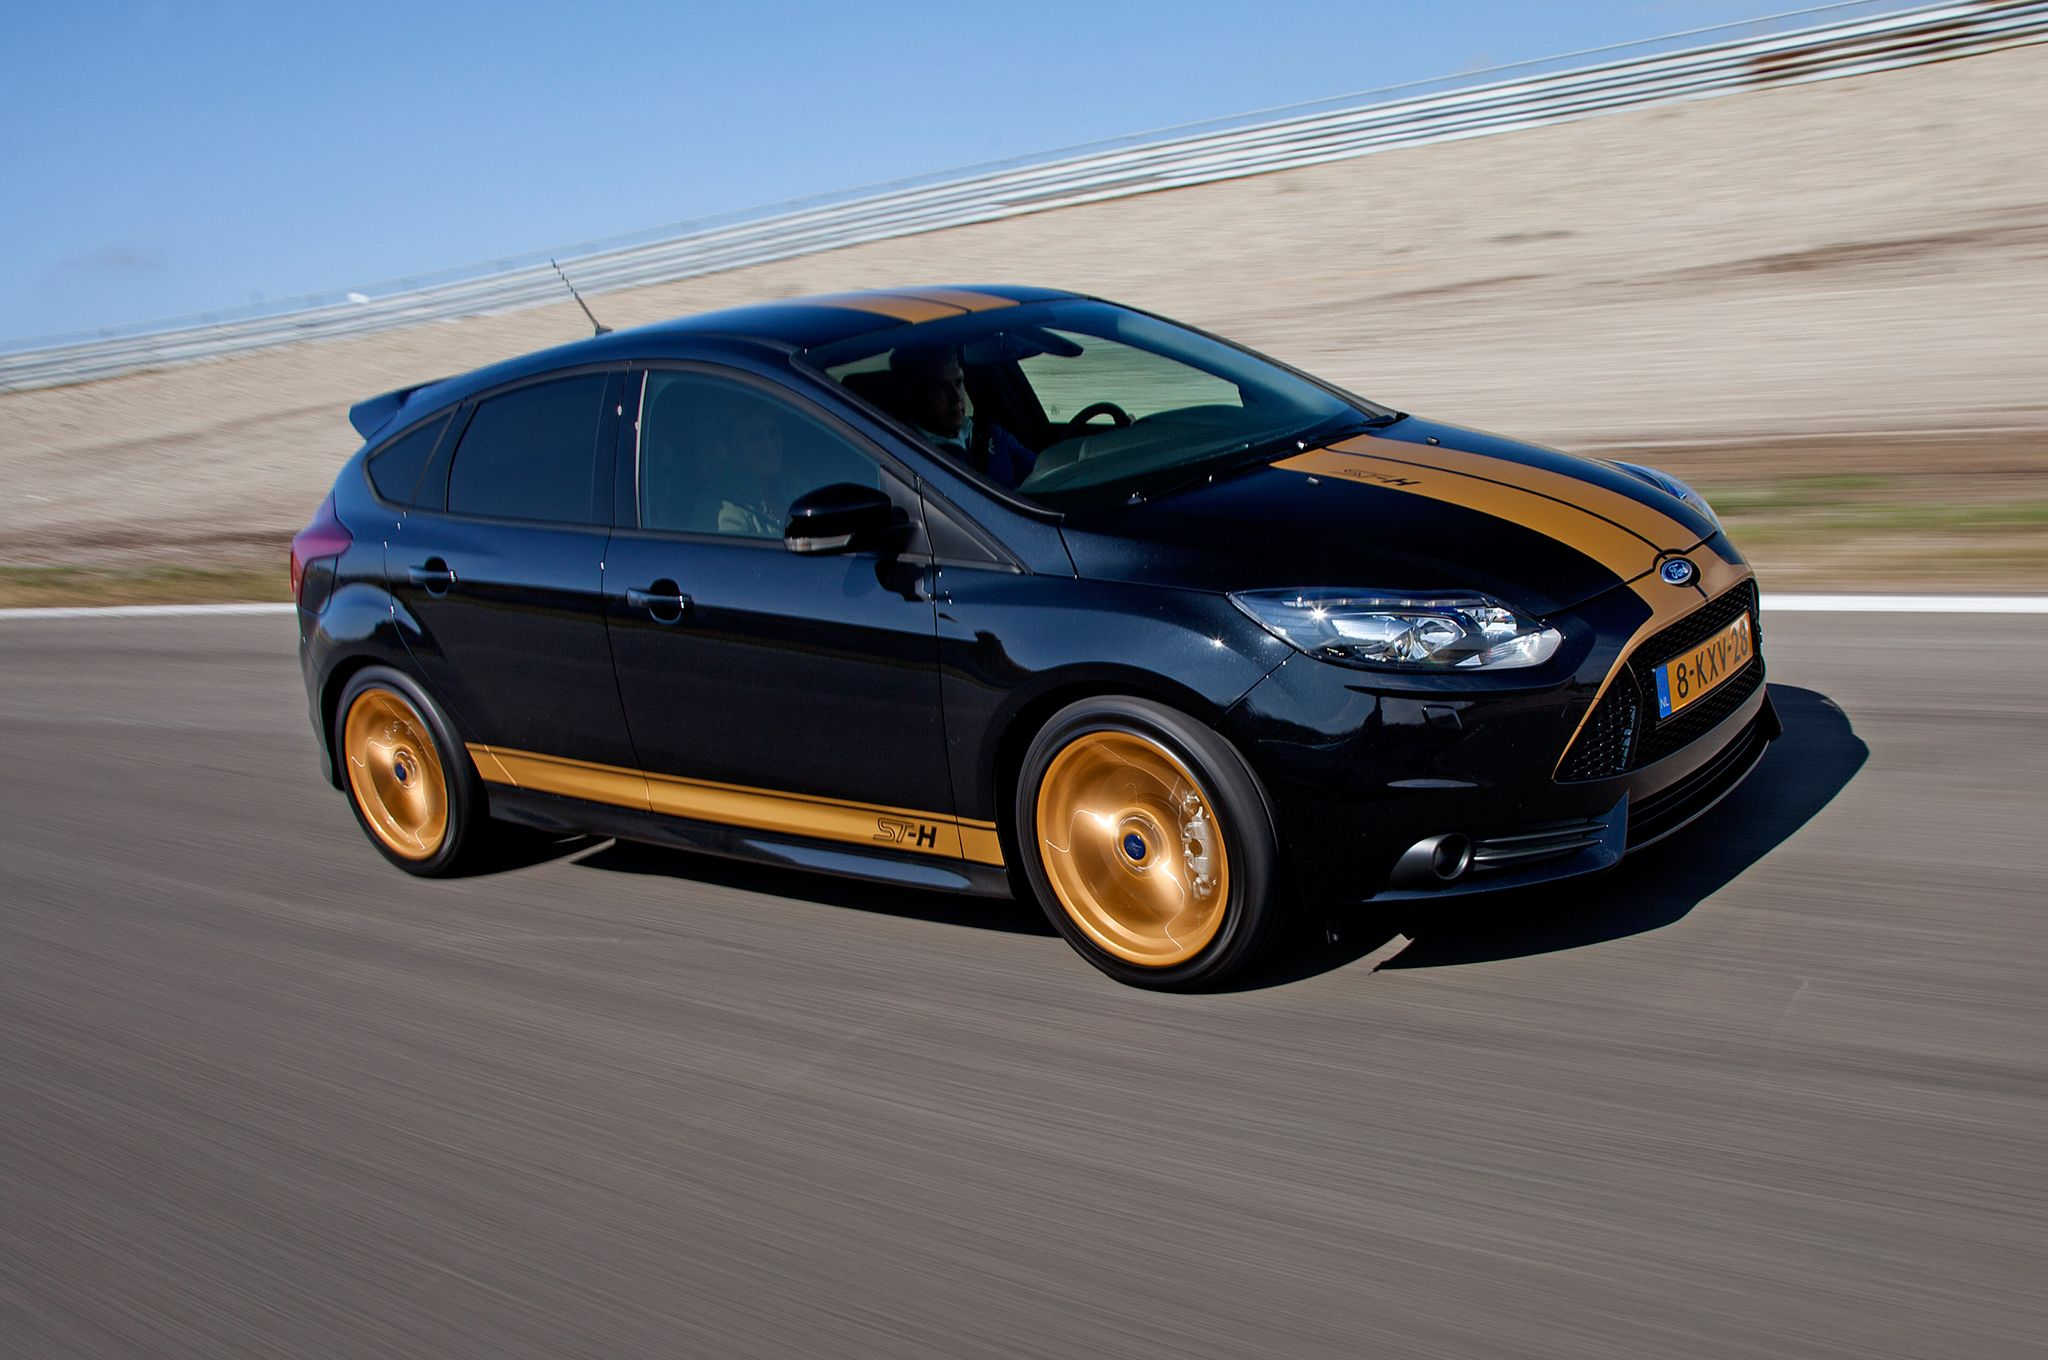 Ford Focus St H Front Three Quarters Jpg 2048 1360 Ford Focus Ford Focus St Ford Focus Hatchback